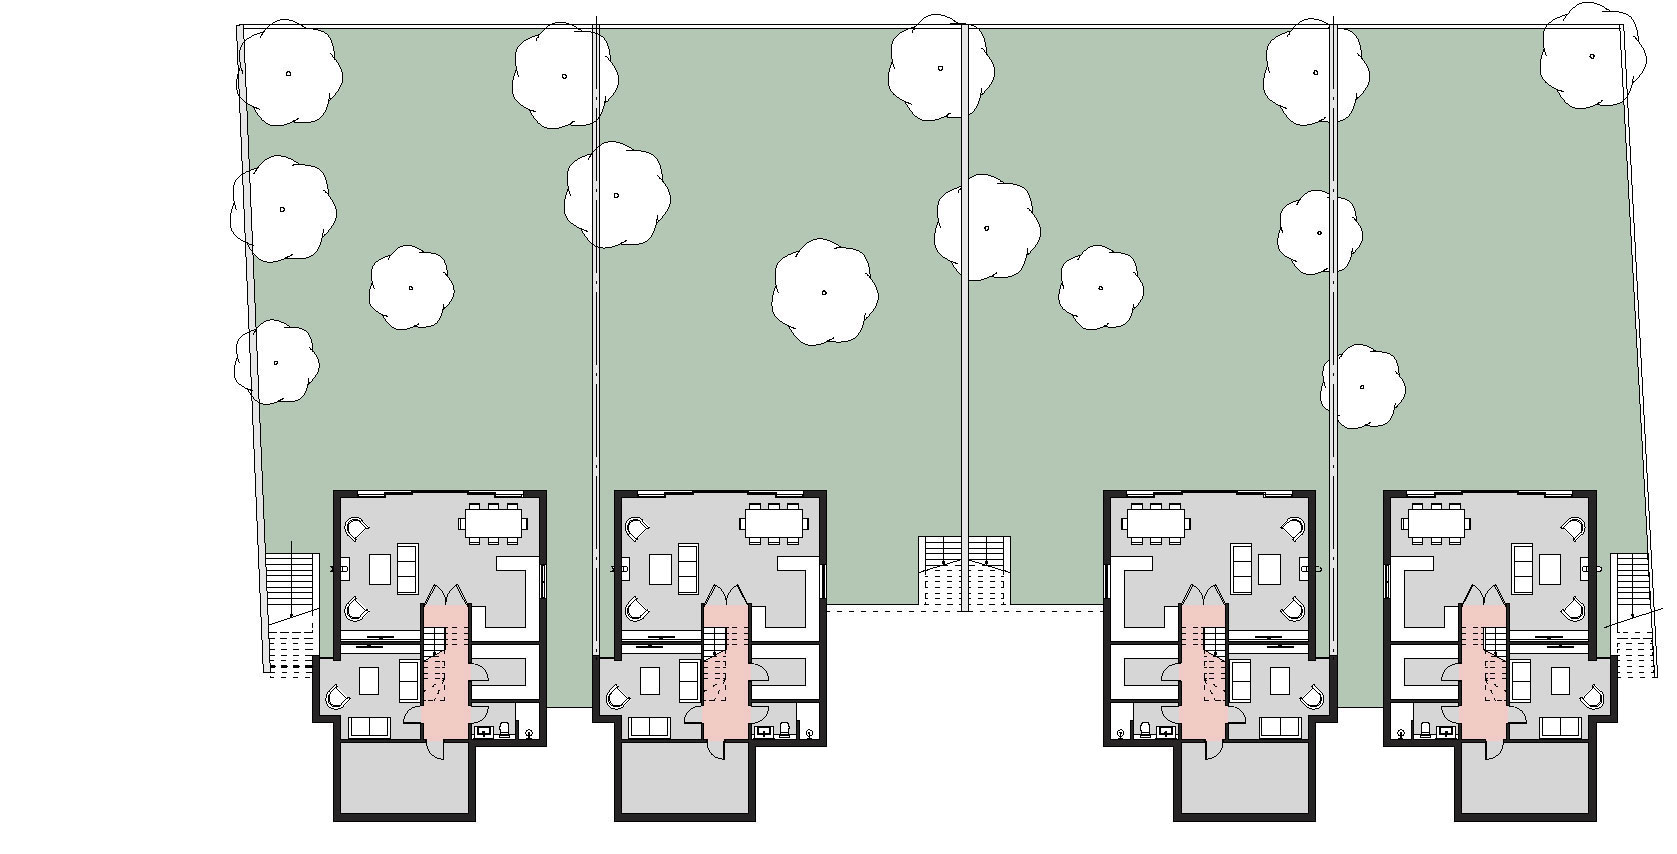 proposed first floor plans dwellings 1-4